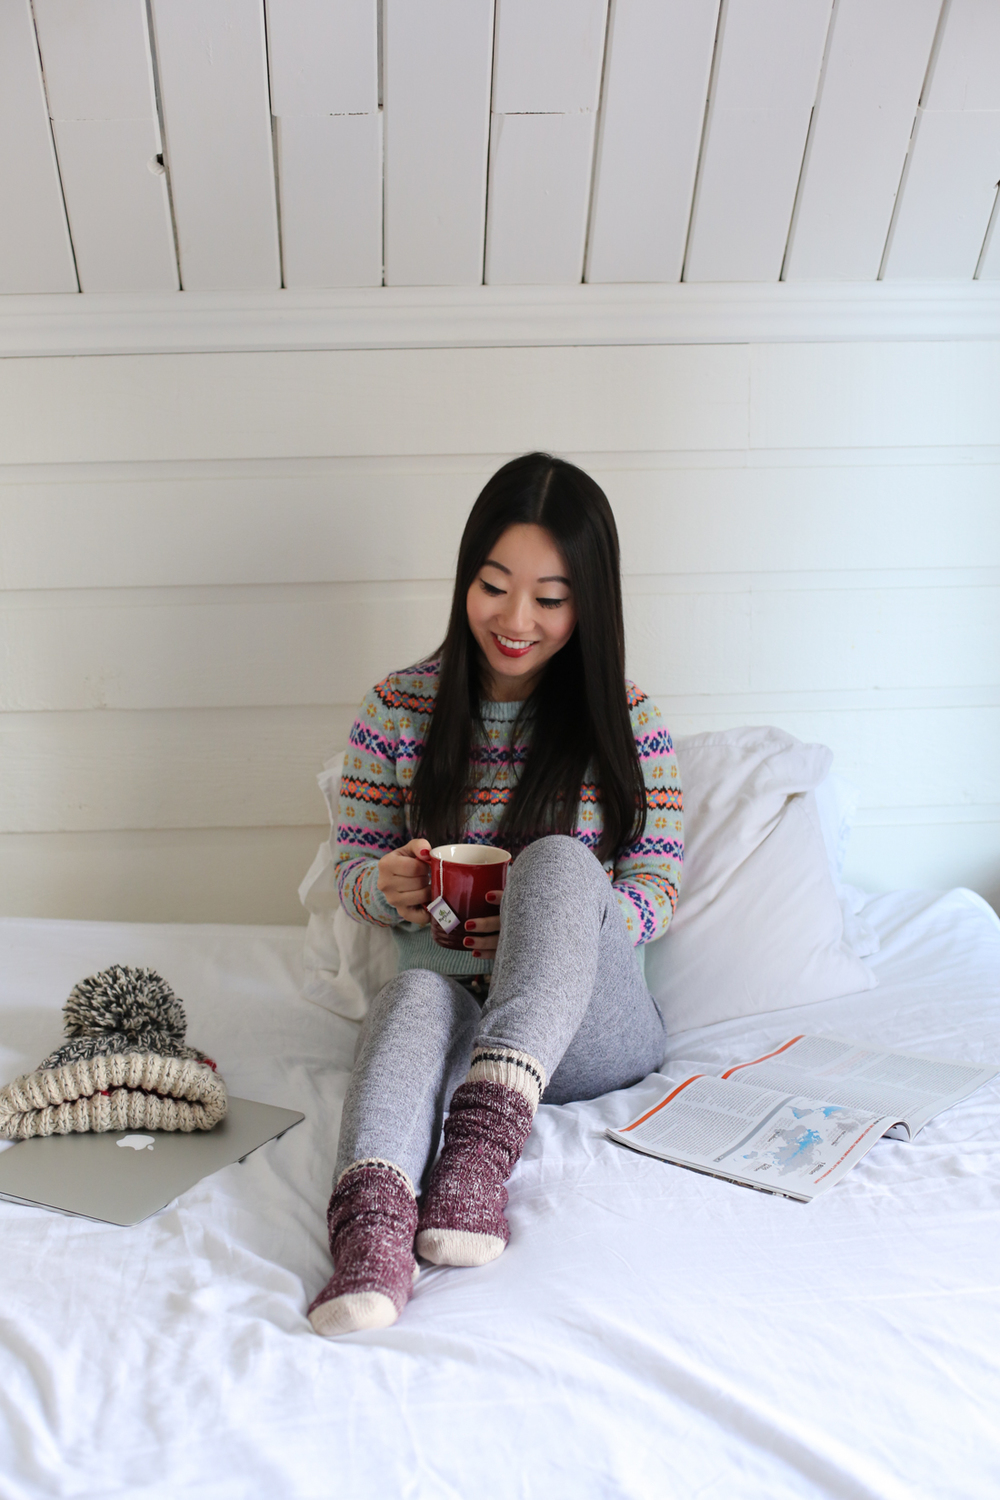 Outfit:Roots Skinny Cozy Sweatpants,J. Crew fair isle sweater,Roots Cabin Collection socks,Roots Chunky Cabin Toque.Mug:Le Creuset;Tea: Might Leaf Tea Earl Grey;Lips:LAURA MERCIER Creme Smooth lipstick